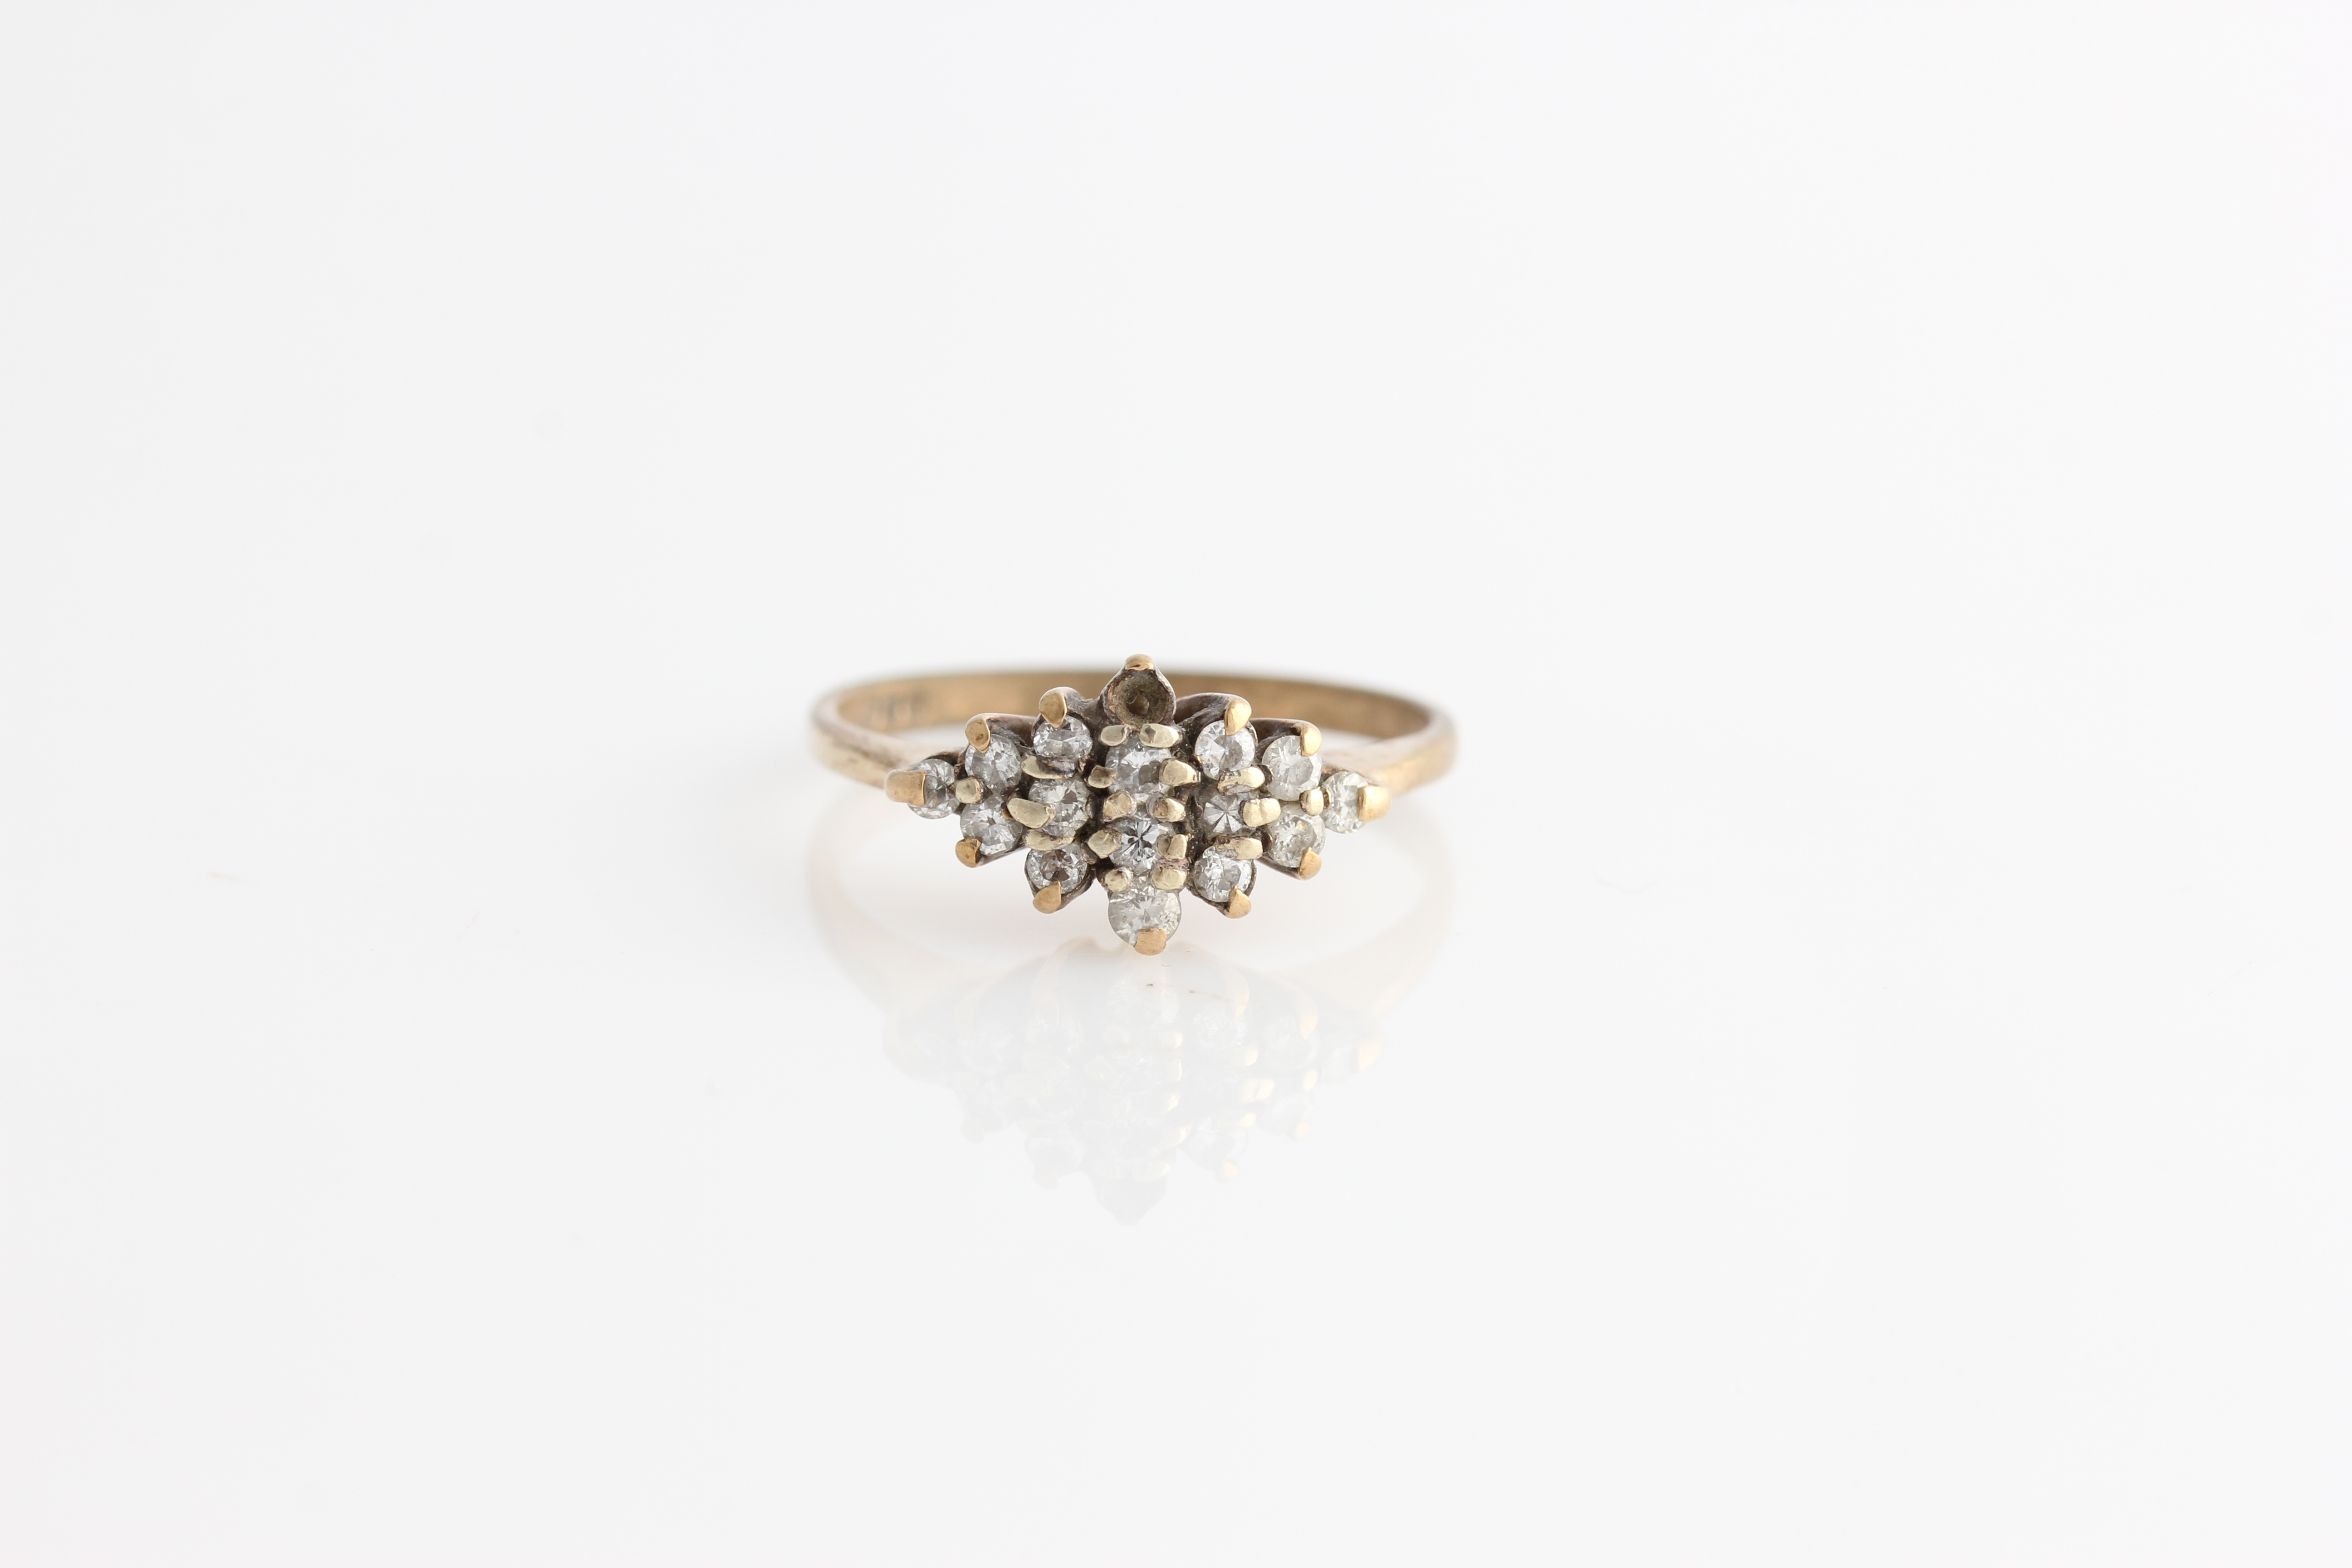 Lot 59 - A hallmarked 9ct yellow gold diamond cluster ring, set with sixteen round brilliant cut diamonds